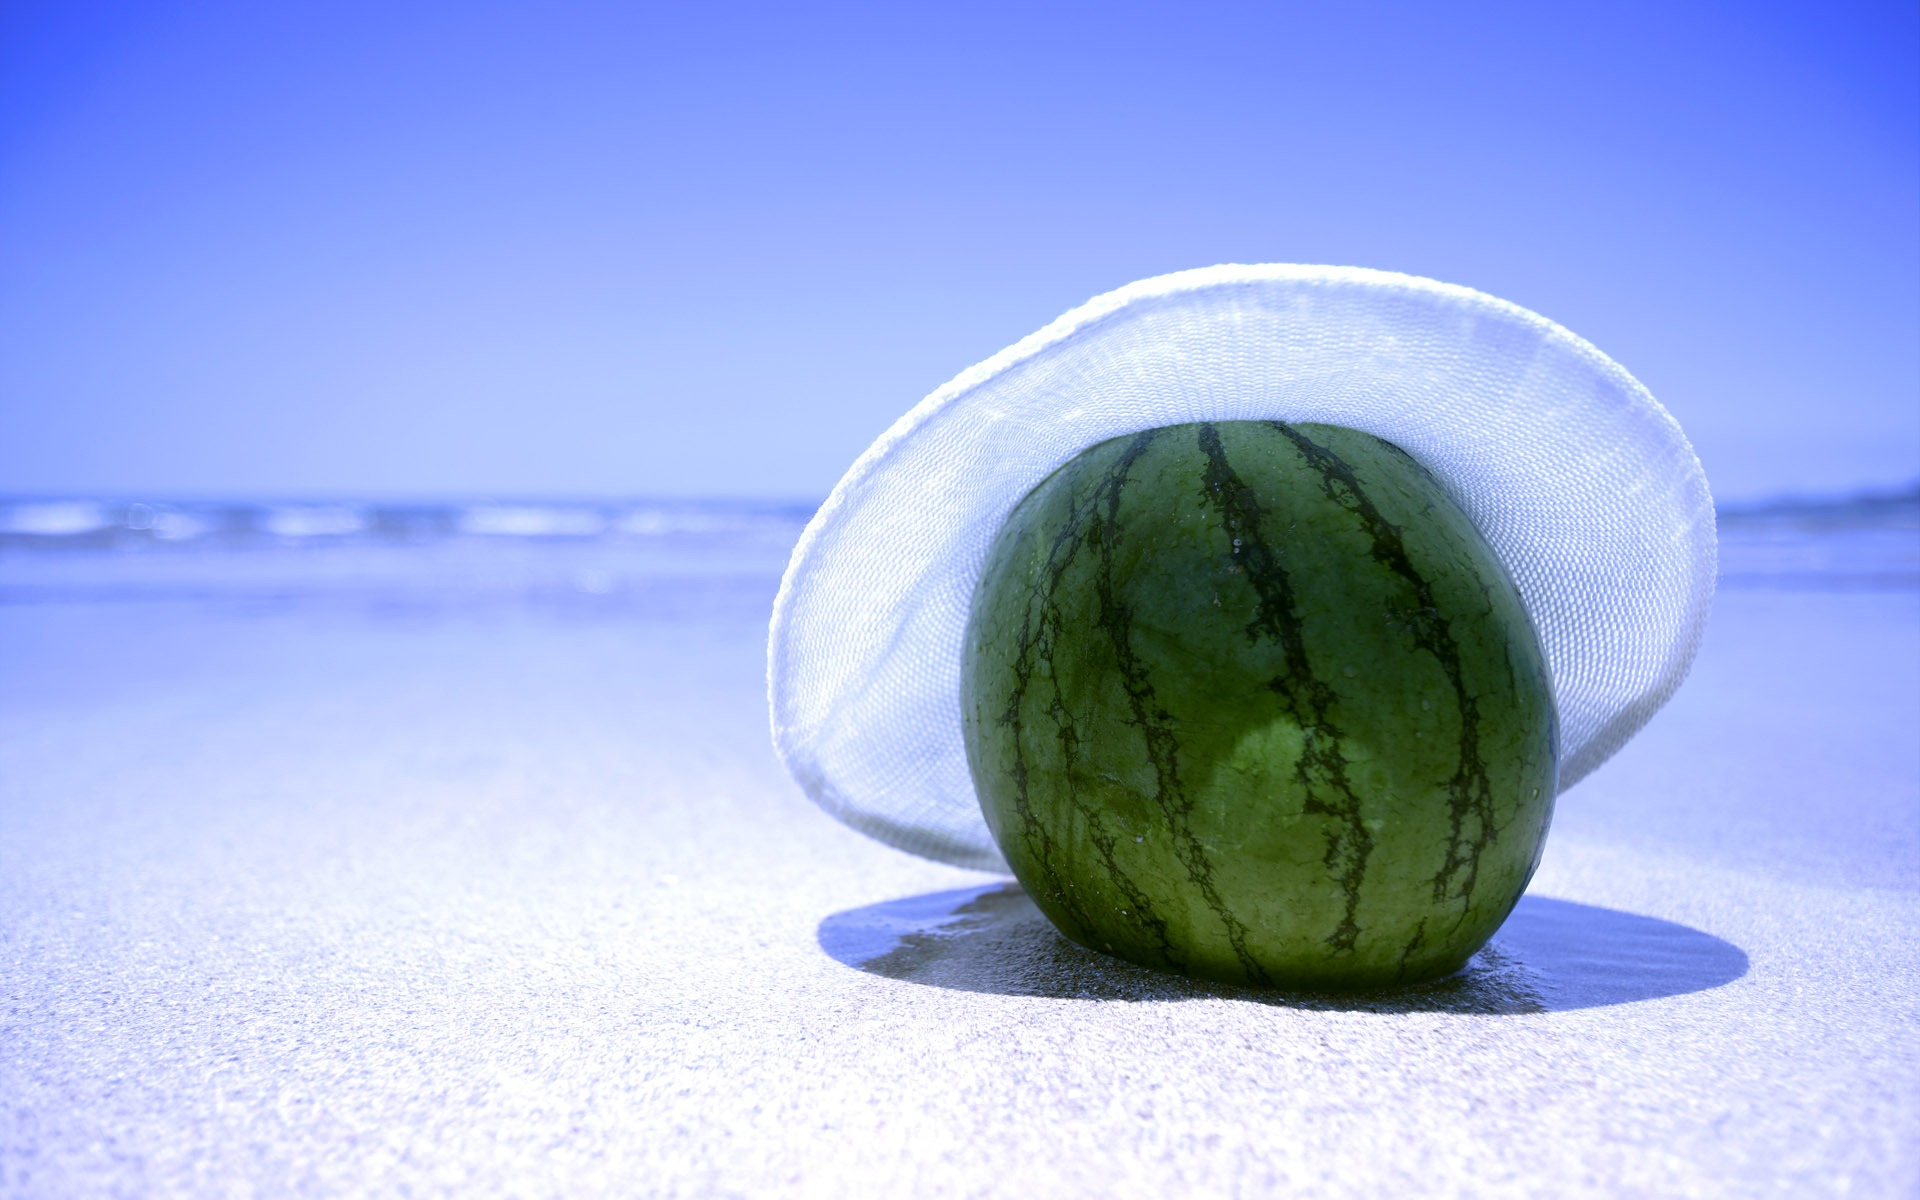 Watermelon Wallpaper Plants Nature Wallpapers in jpg format for ...